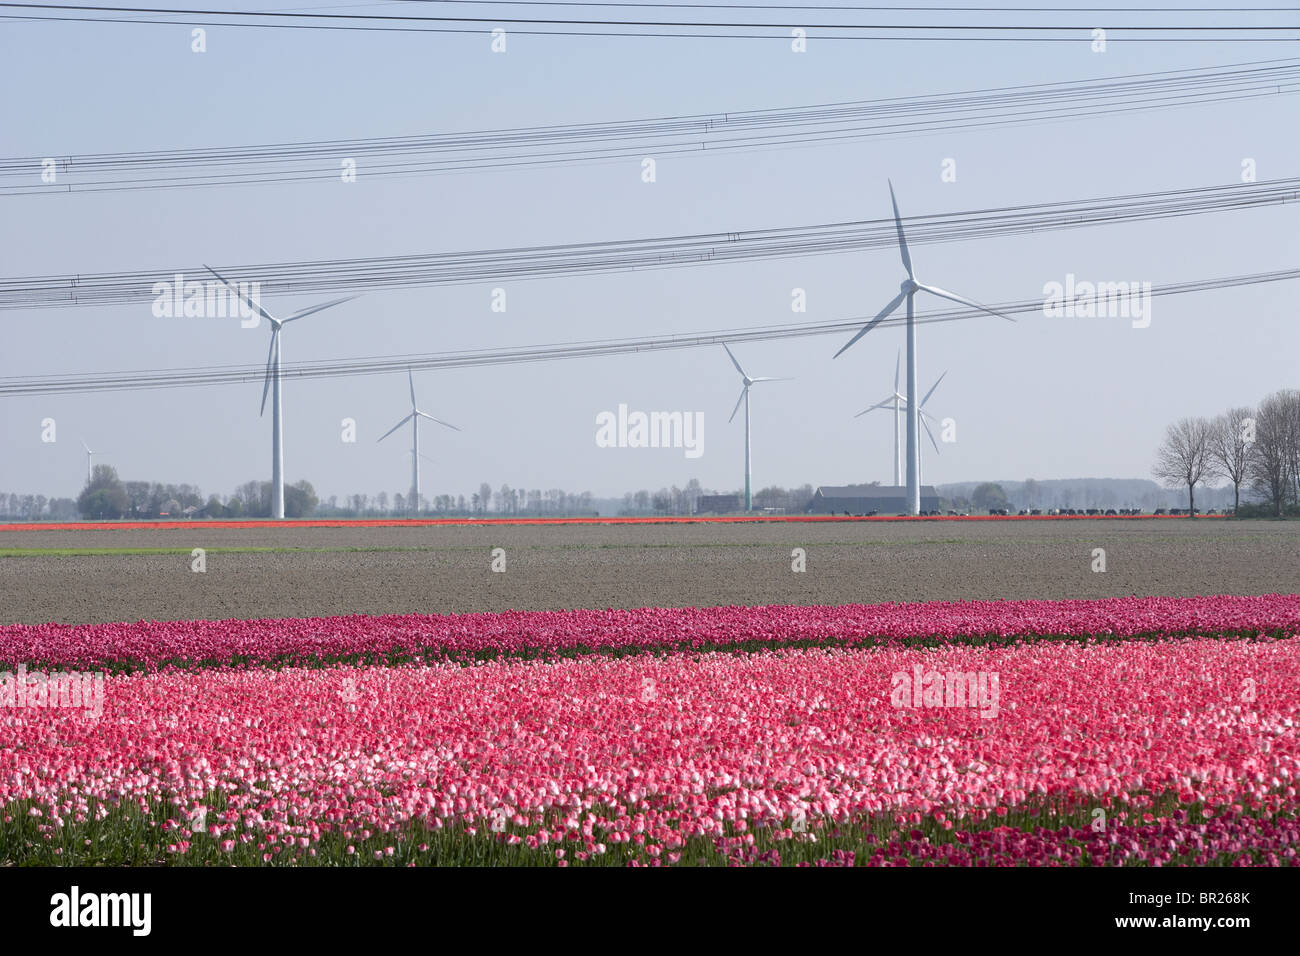 Tulips and wind turbines in Delf, Netherlands. - Stock Image